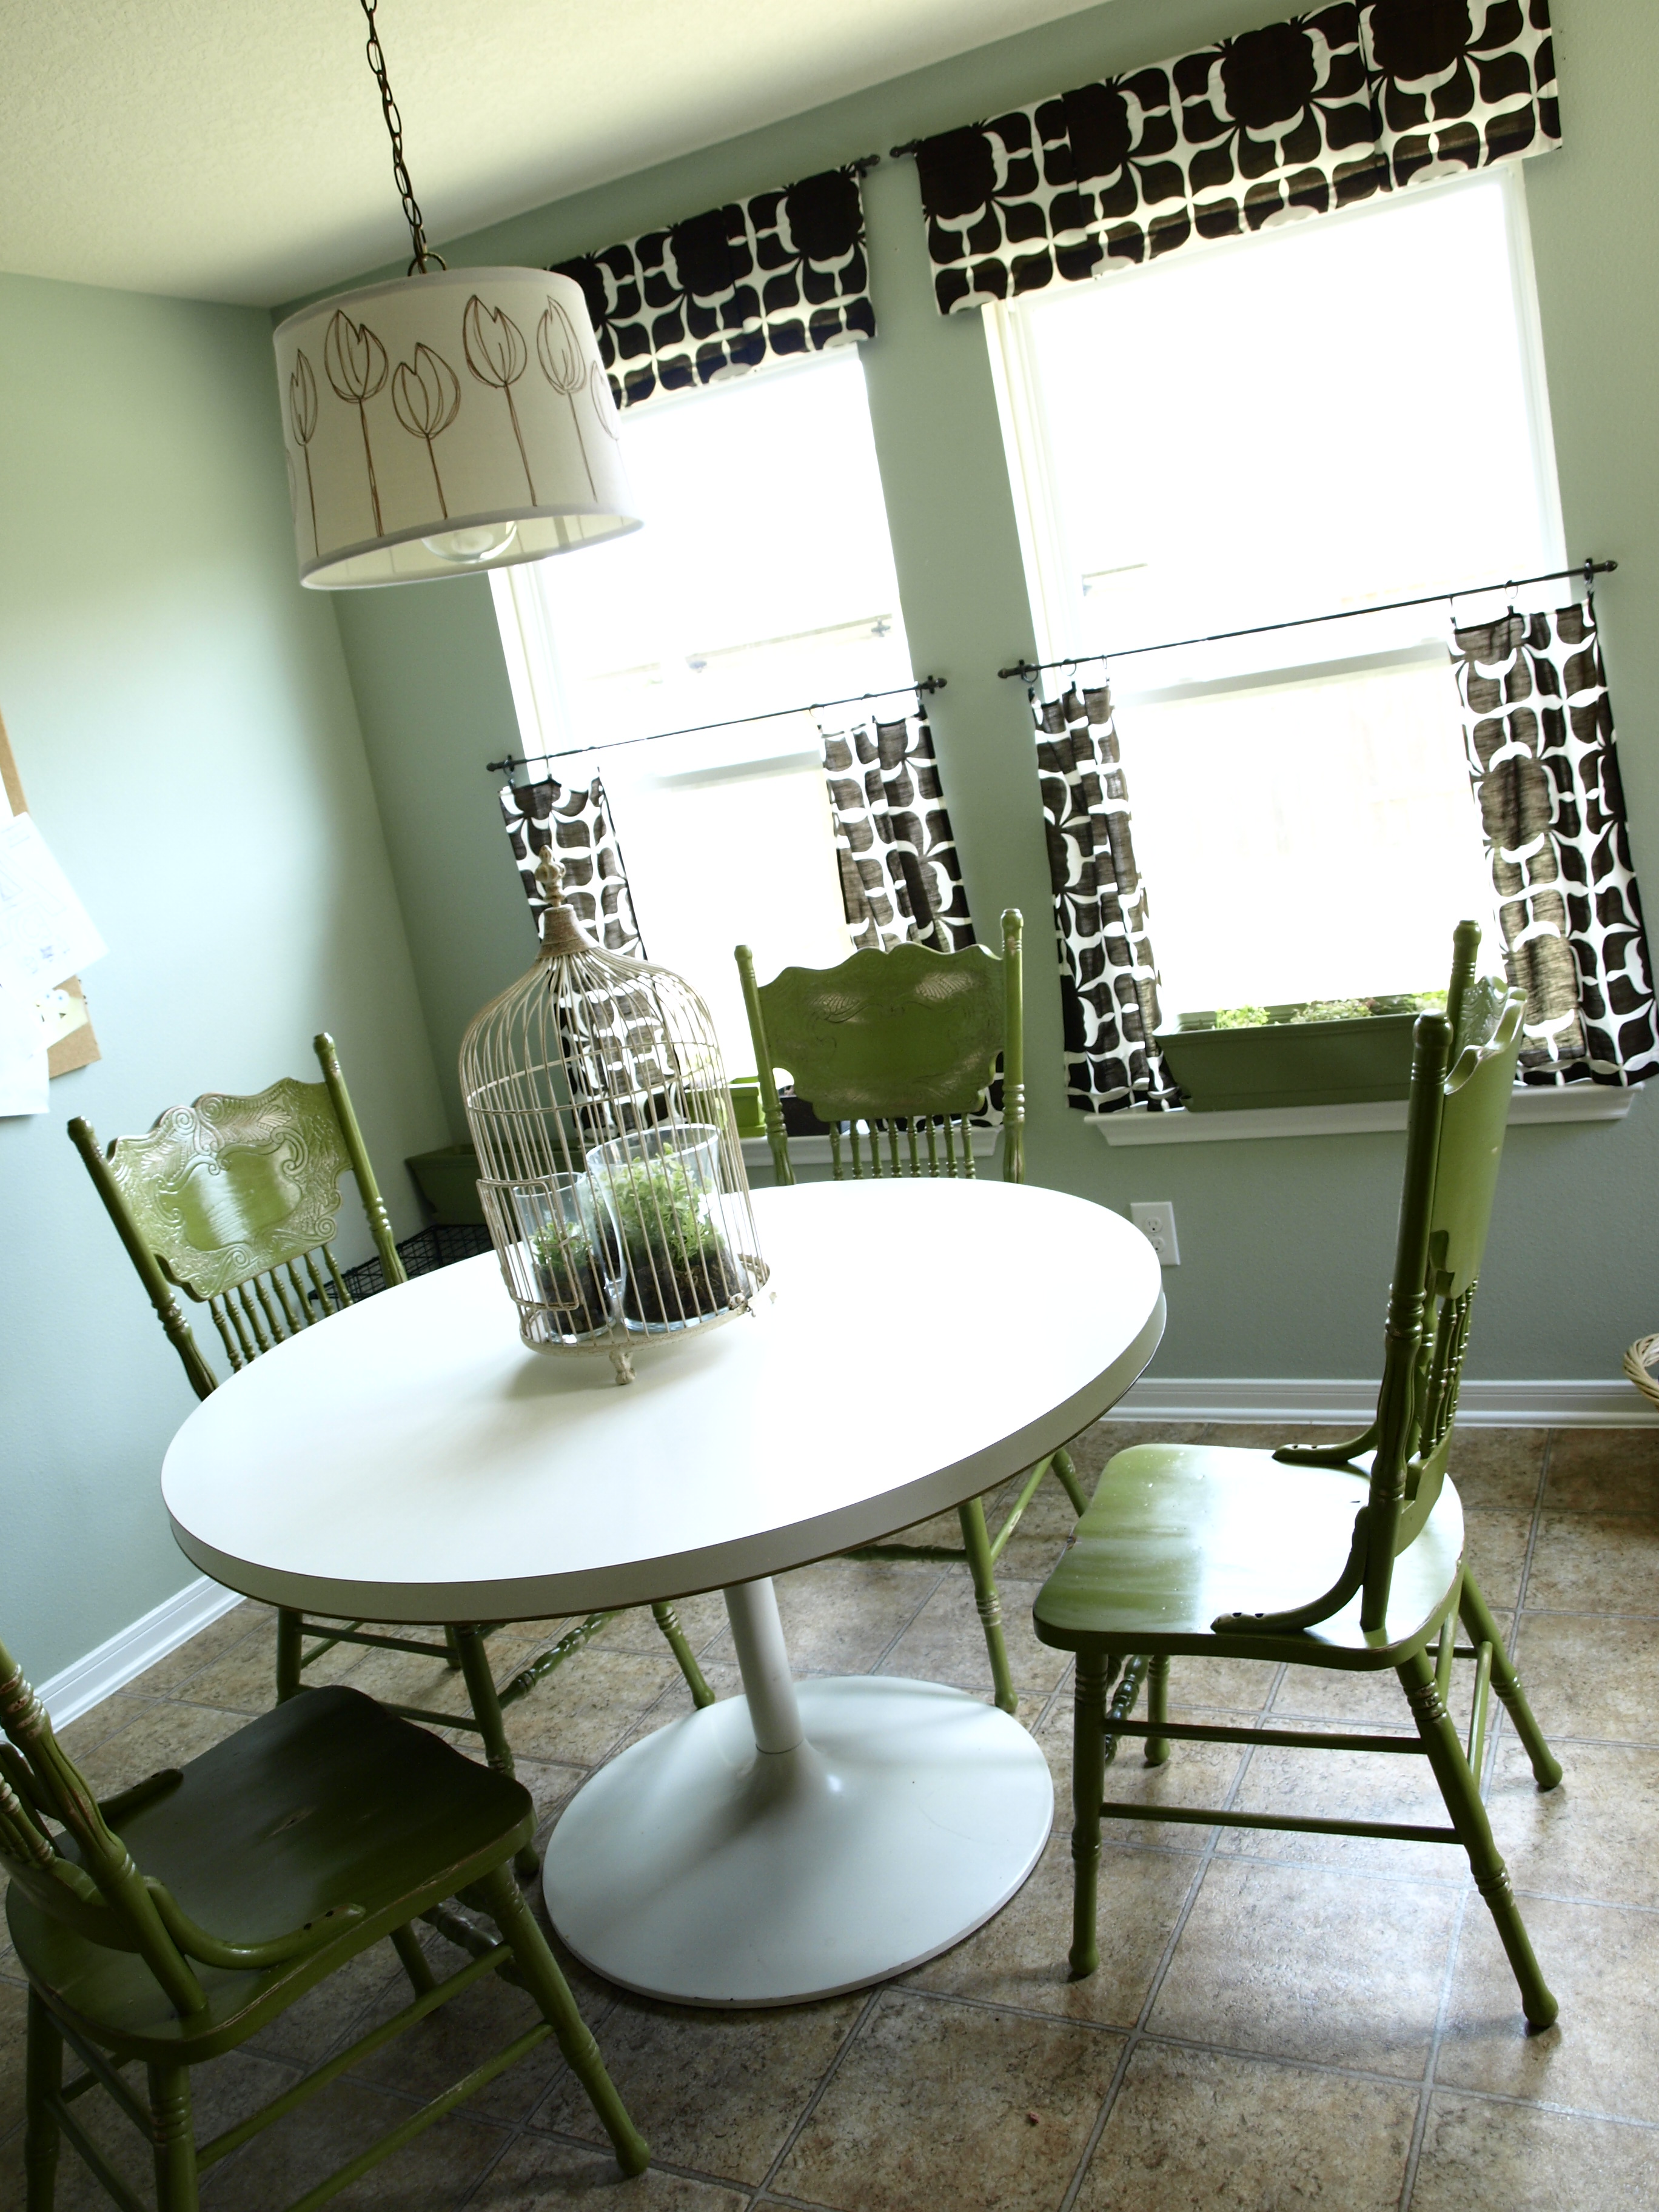 green kitchen chairs sink drain pipe painted and distressed see cate create